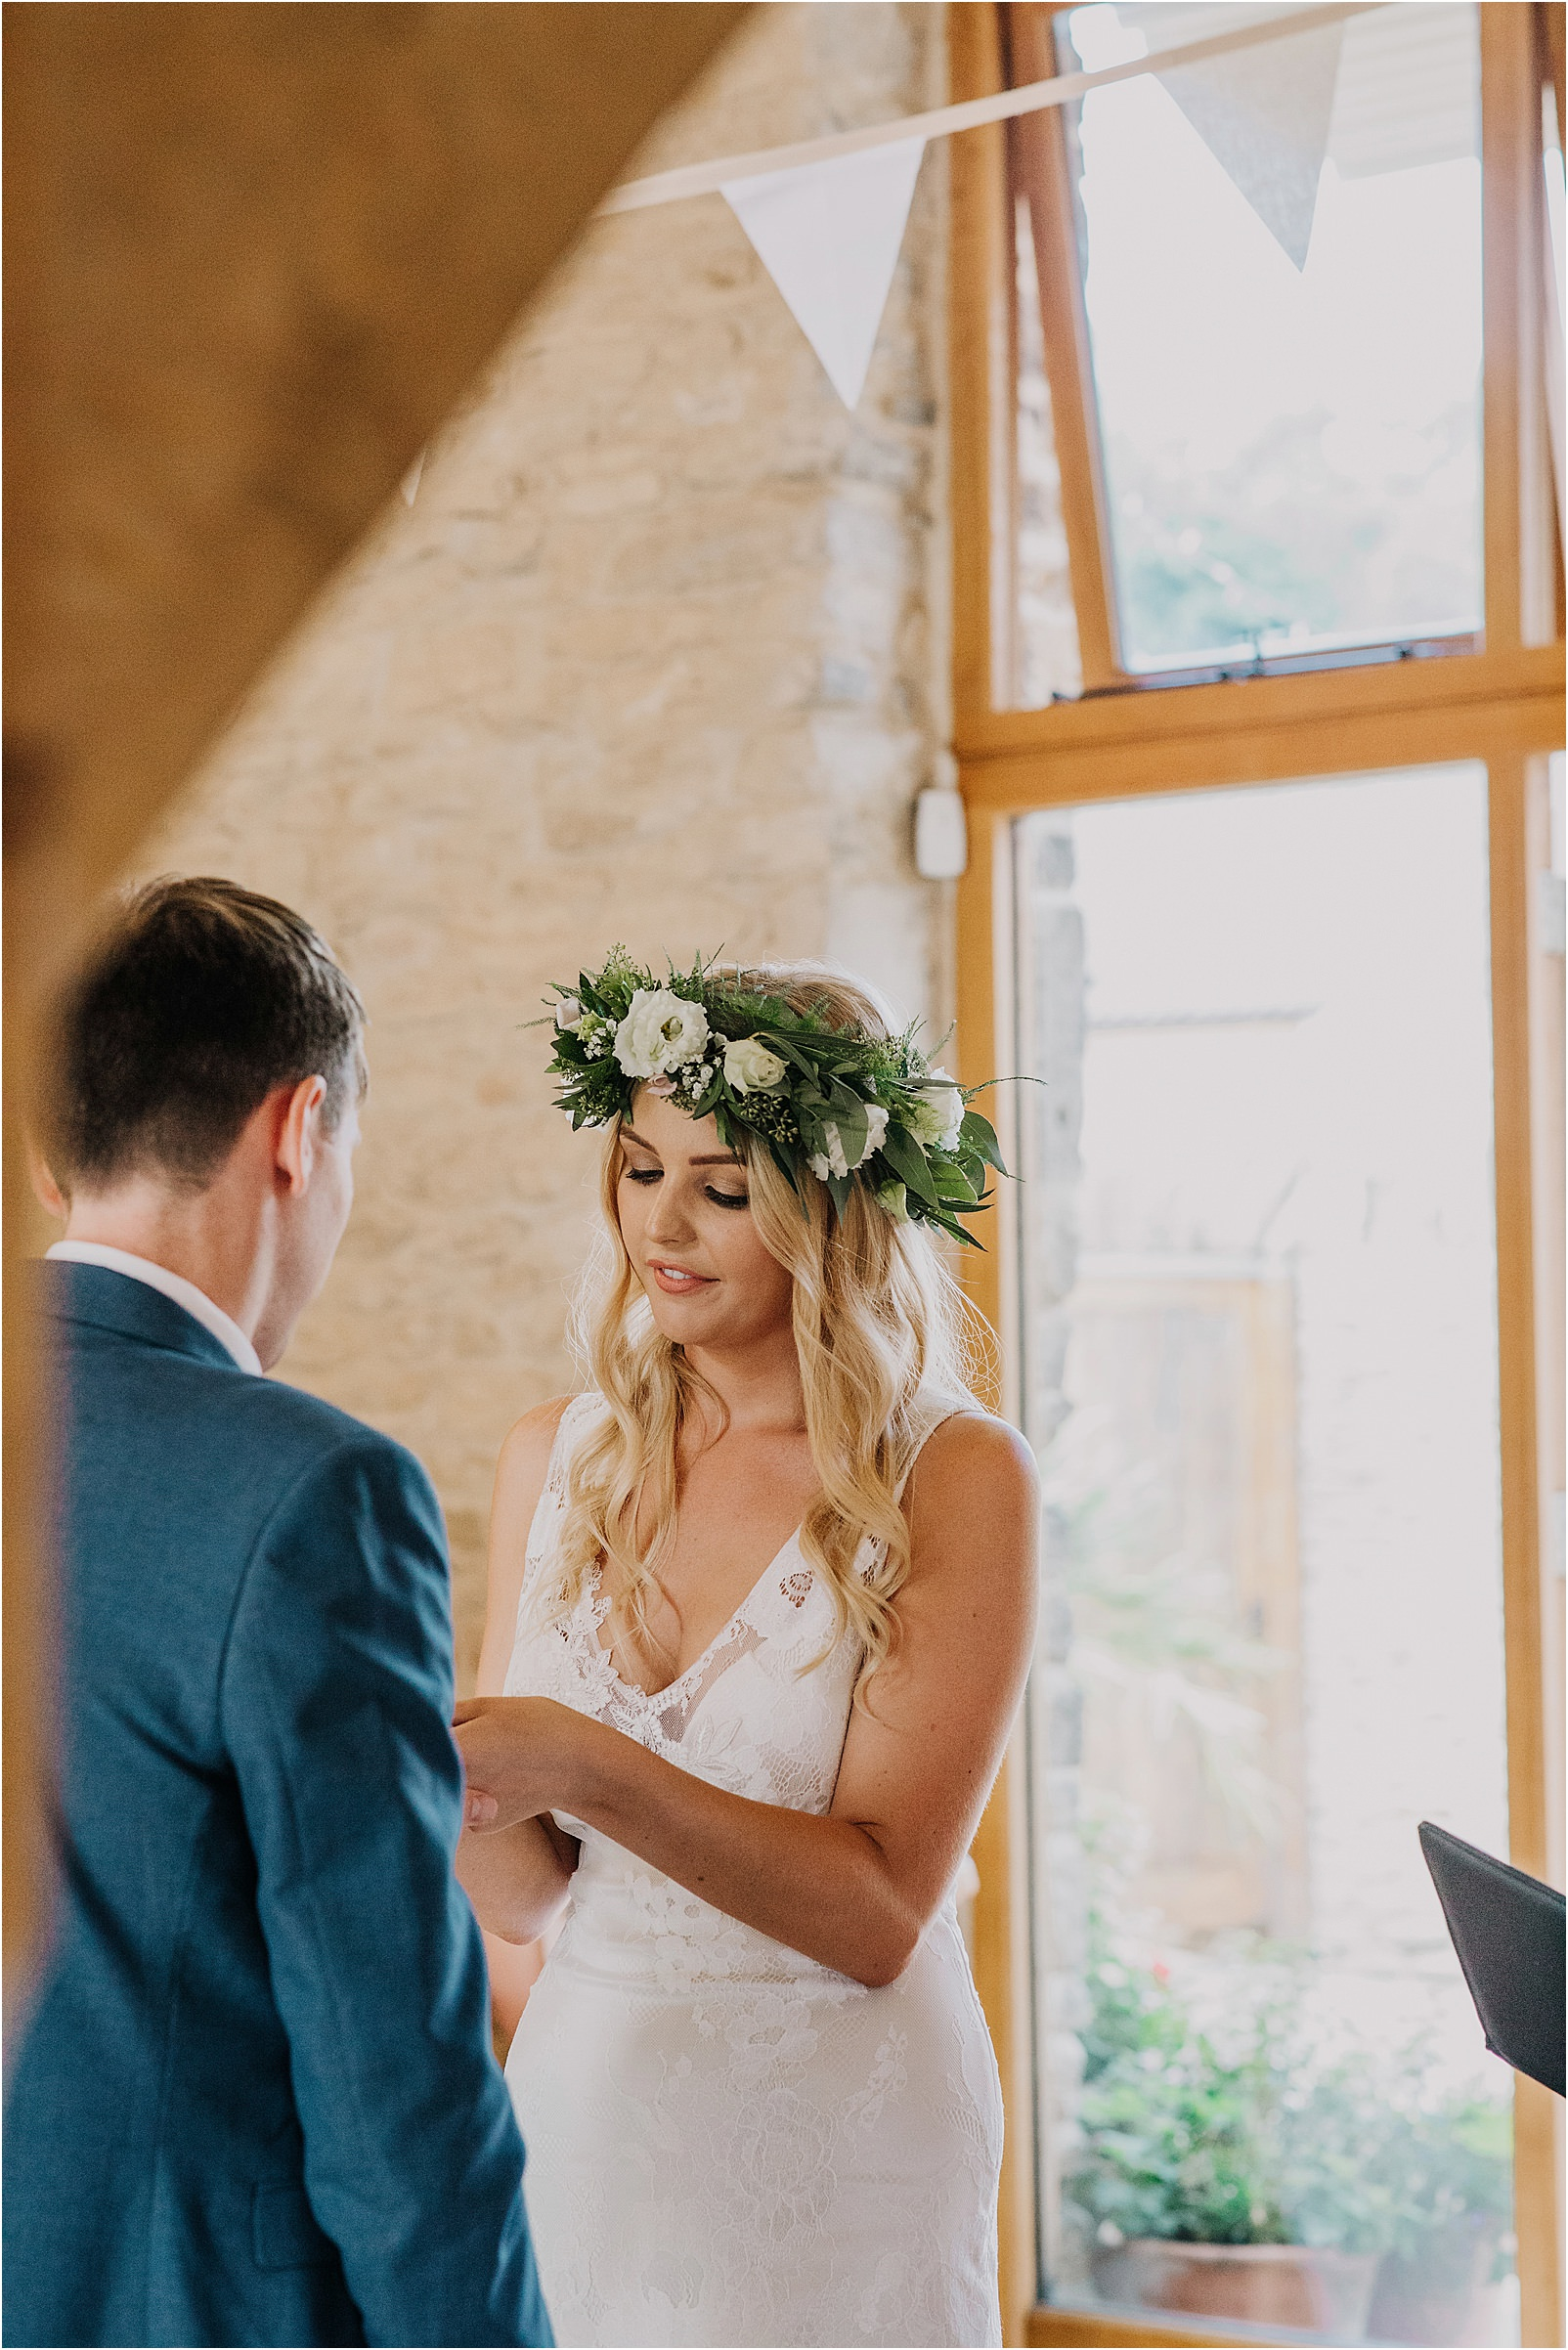 flower crown bride exchanging rings at Kingscote Barn wedding